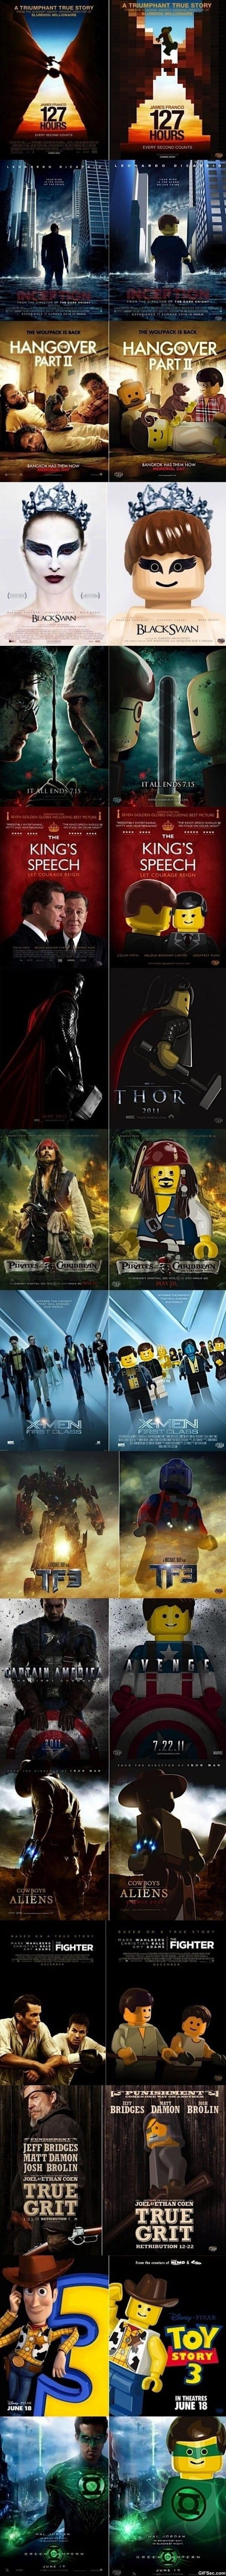 awesome-lego-movie-posters